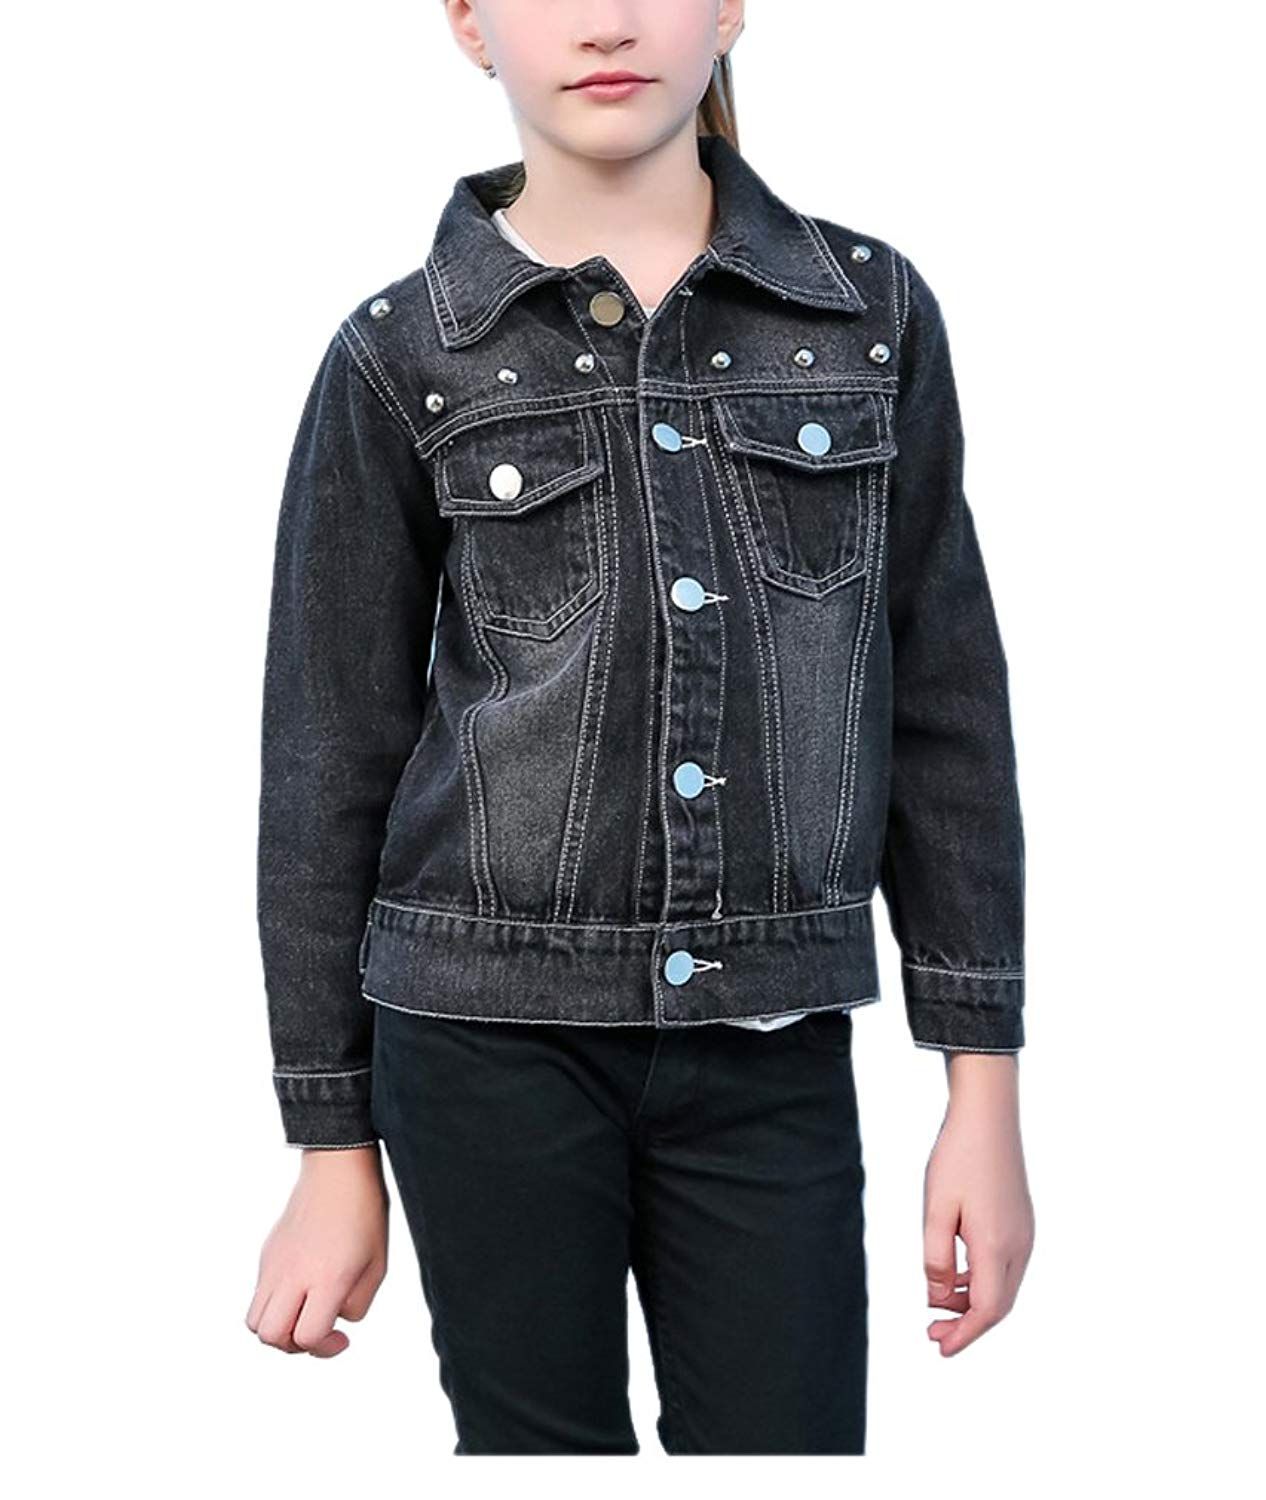 87571c0a8b7 Get Quotations · YUFAN Girls Punk Rivets Studded Beaded Black Denim Jean  Jacket Girls Black Trucker Jacket